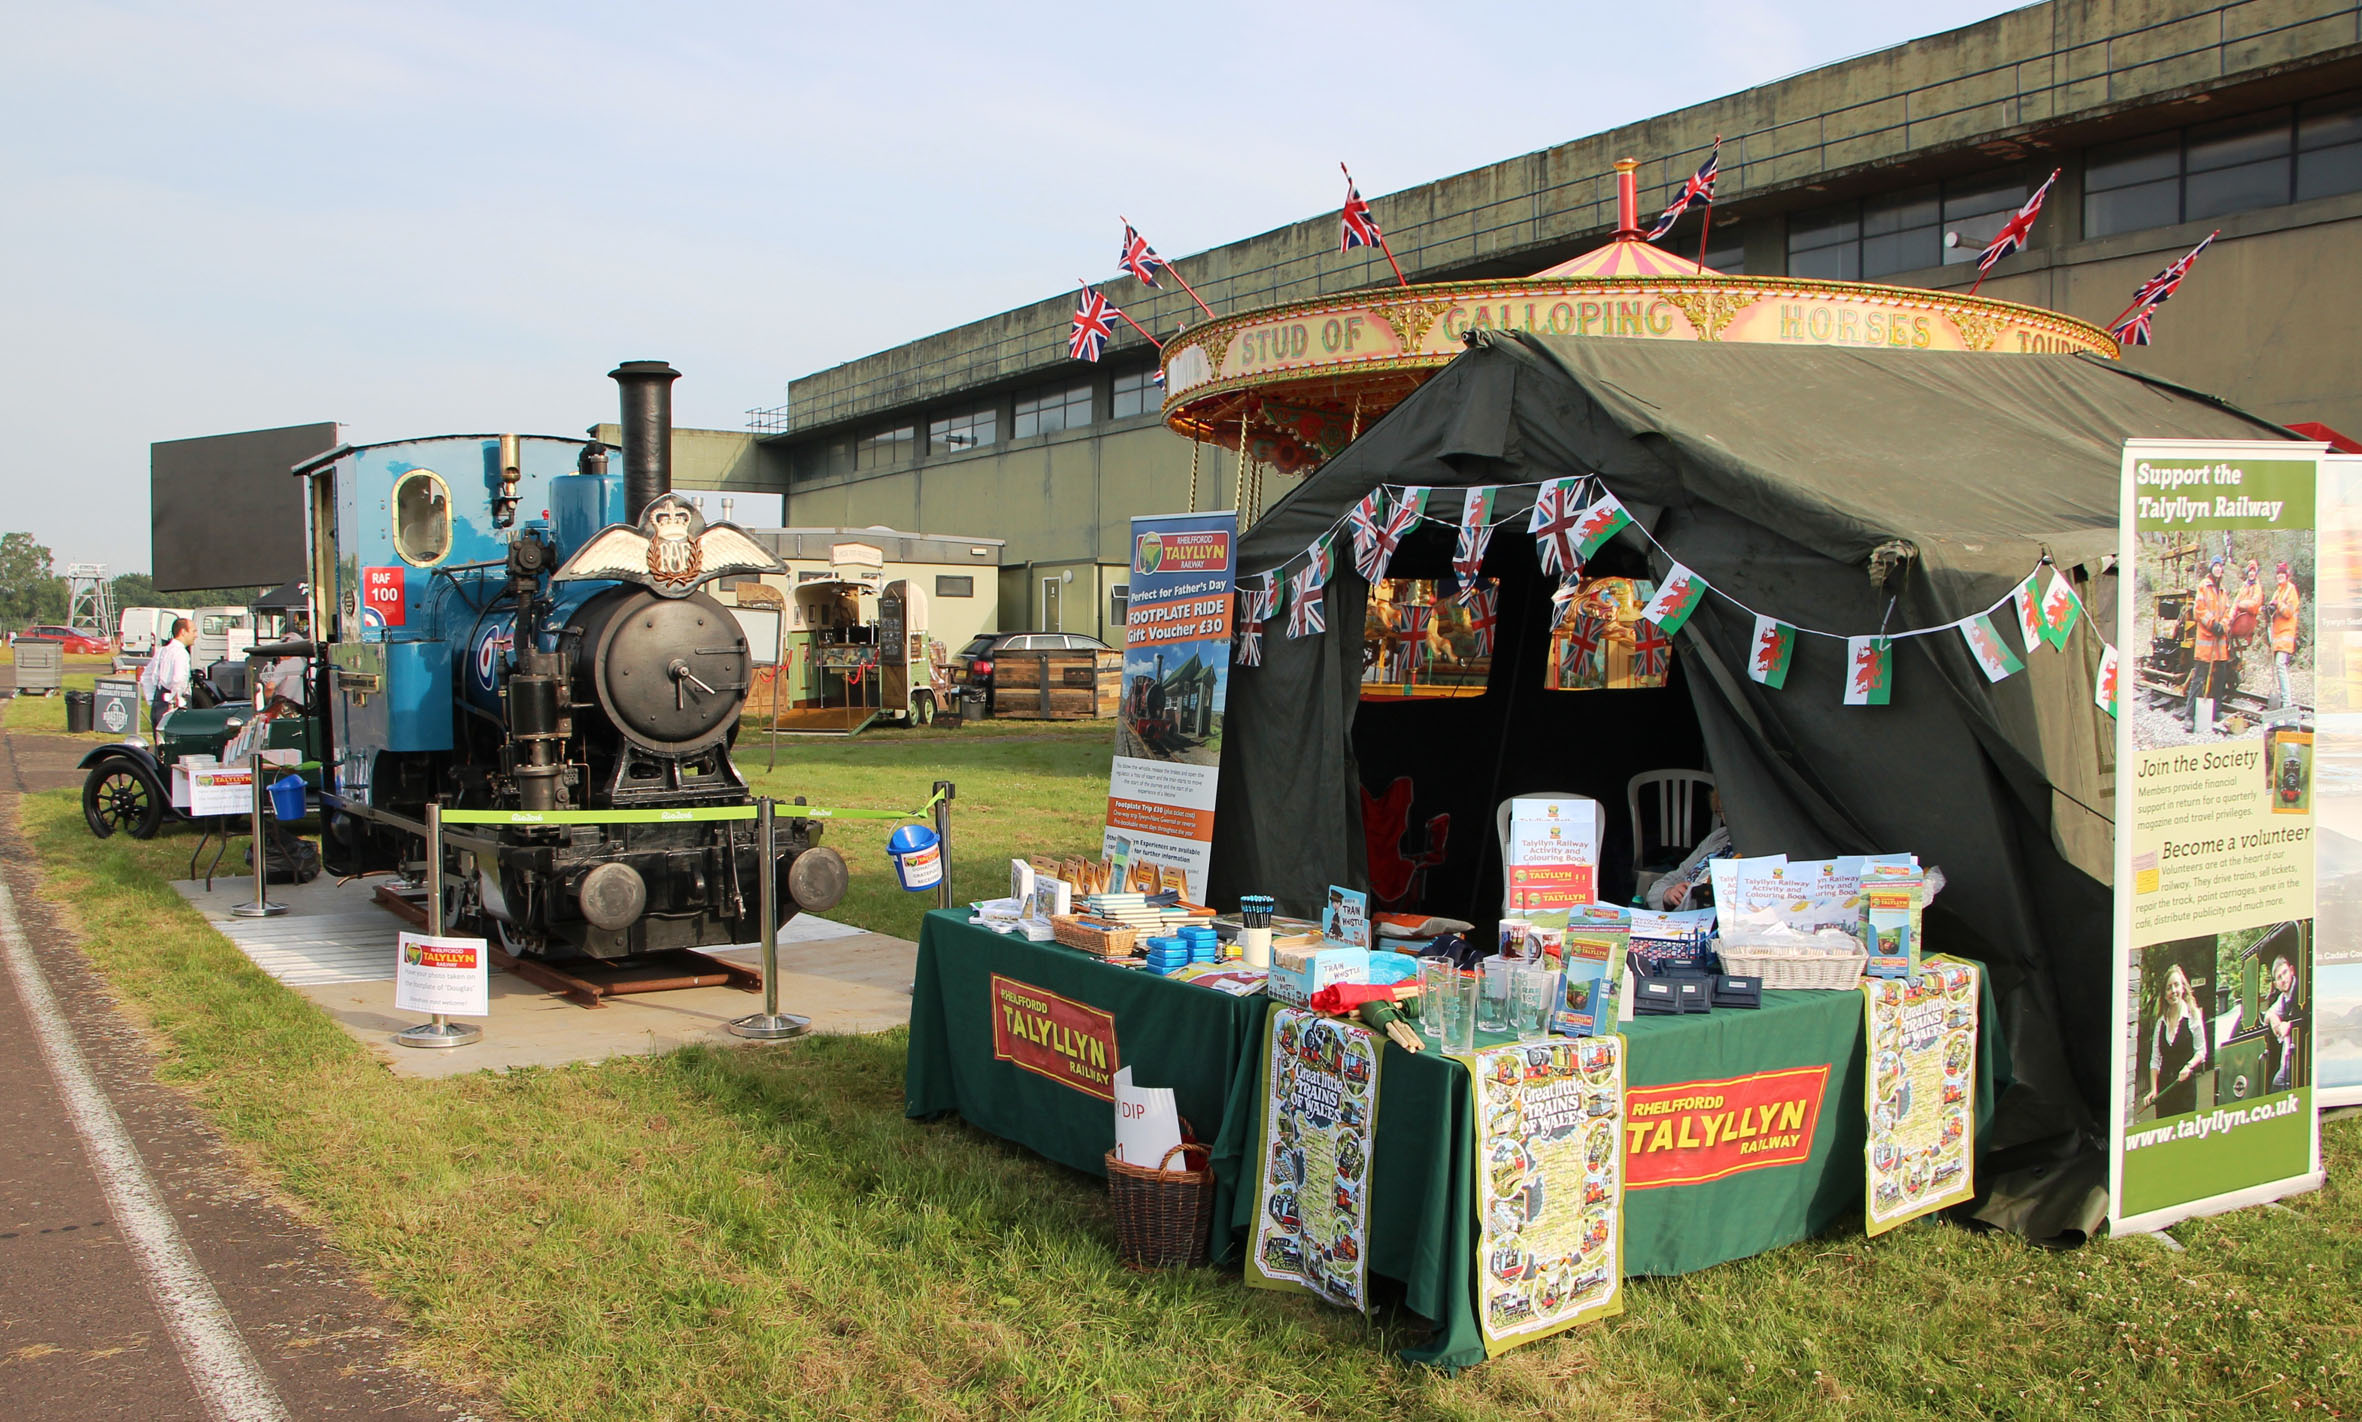 Talyllyn locomotive stars at RAF Cosford Air Show